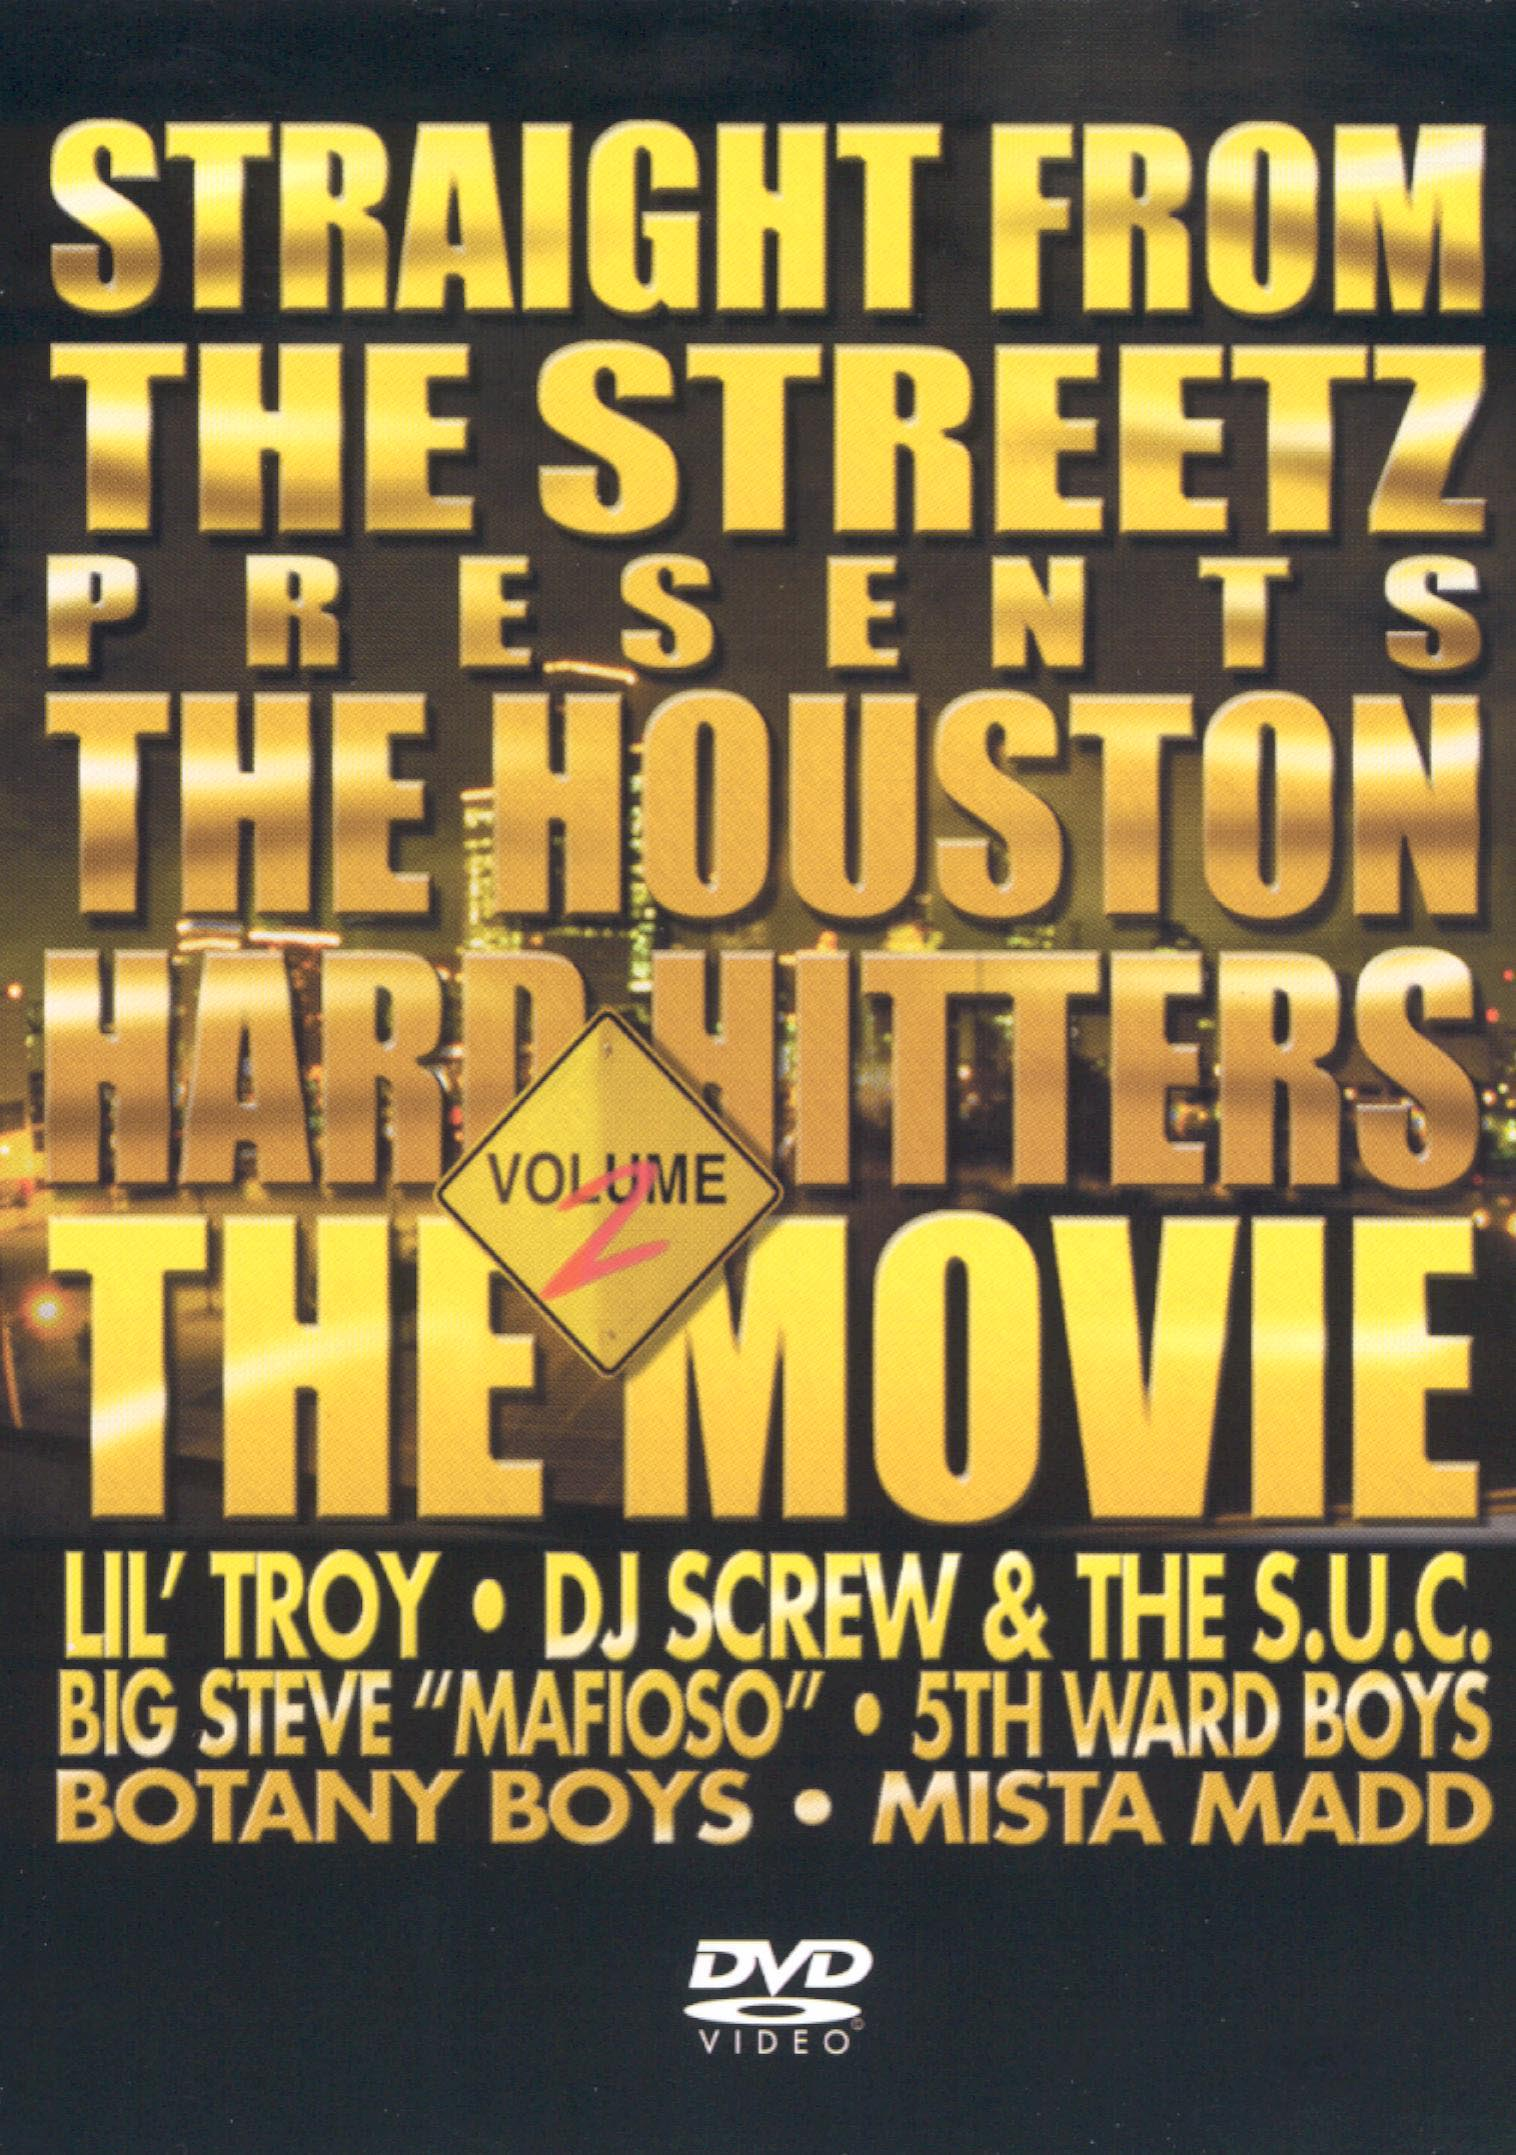 Straight from the Streetz Presents: The Houston Hard-Hitters